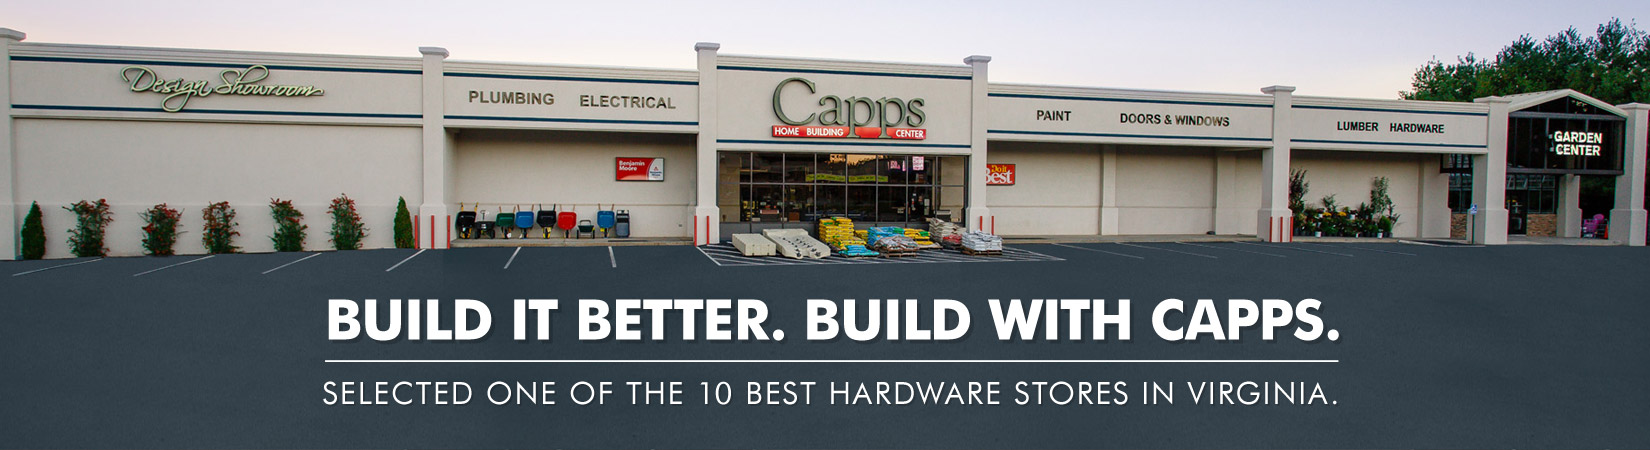 Capps Home Building Center storefront image